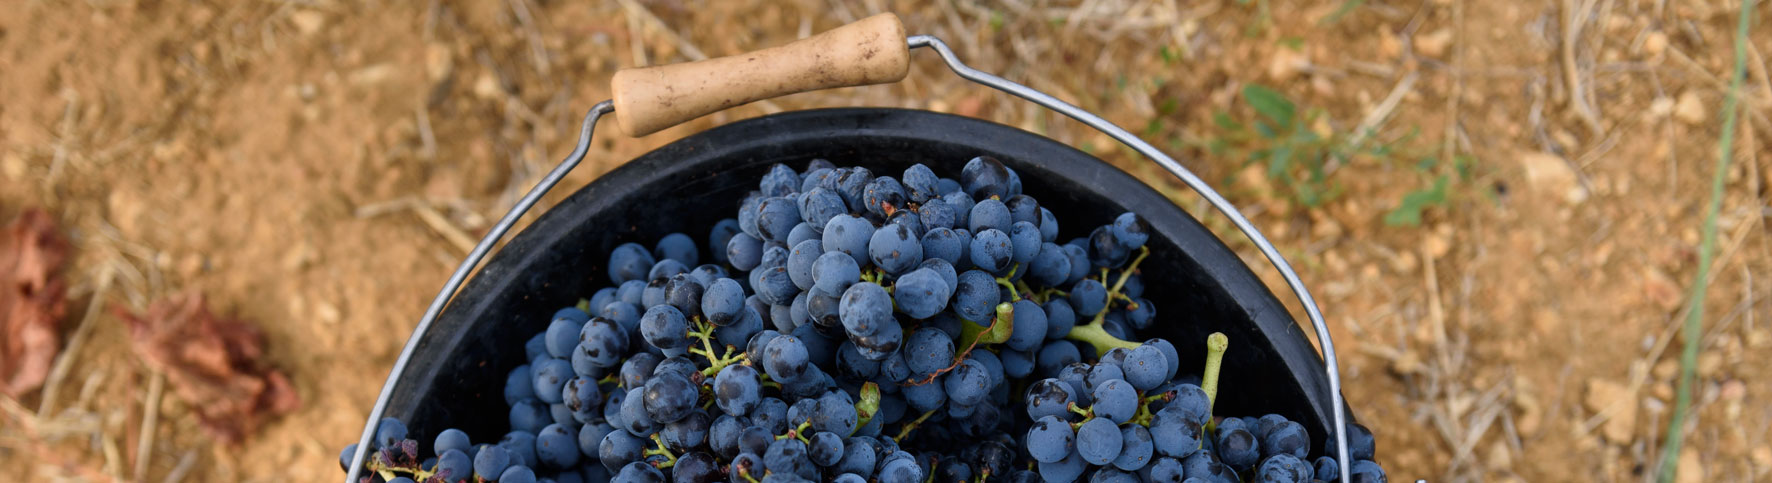 blue grapes in a bucket after harvesting of barbeyrolles vineyard in France